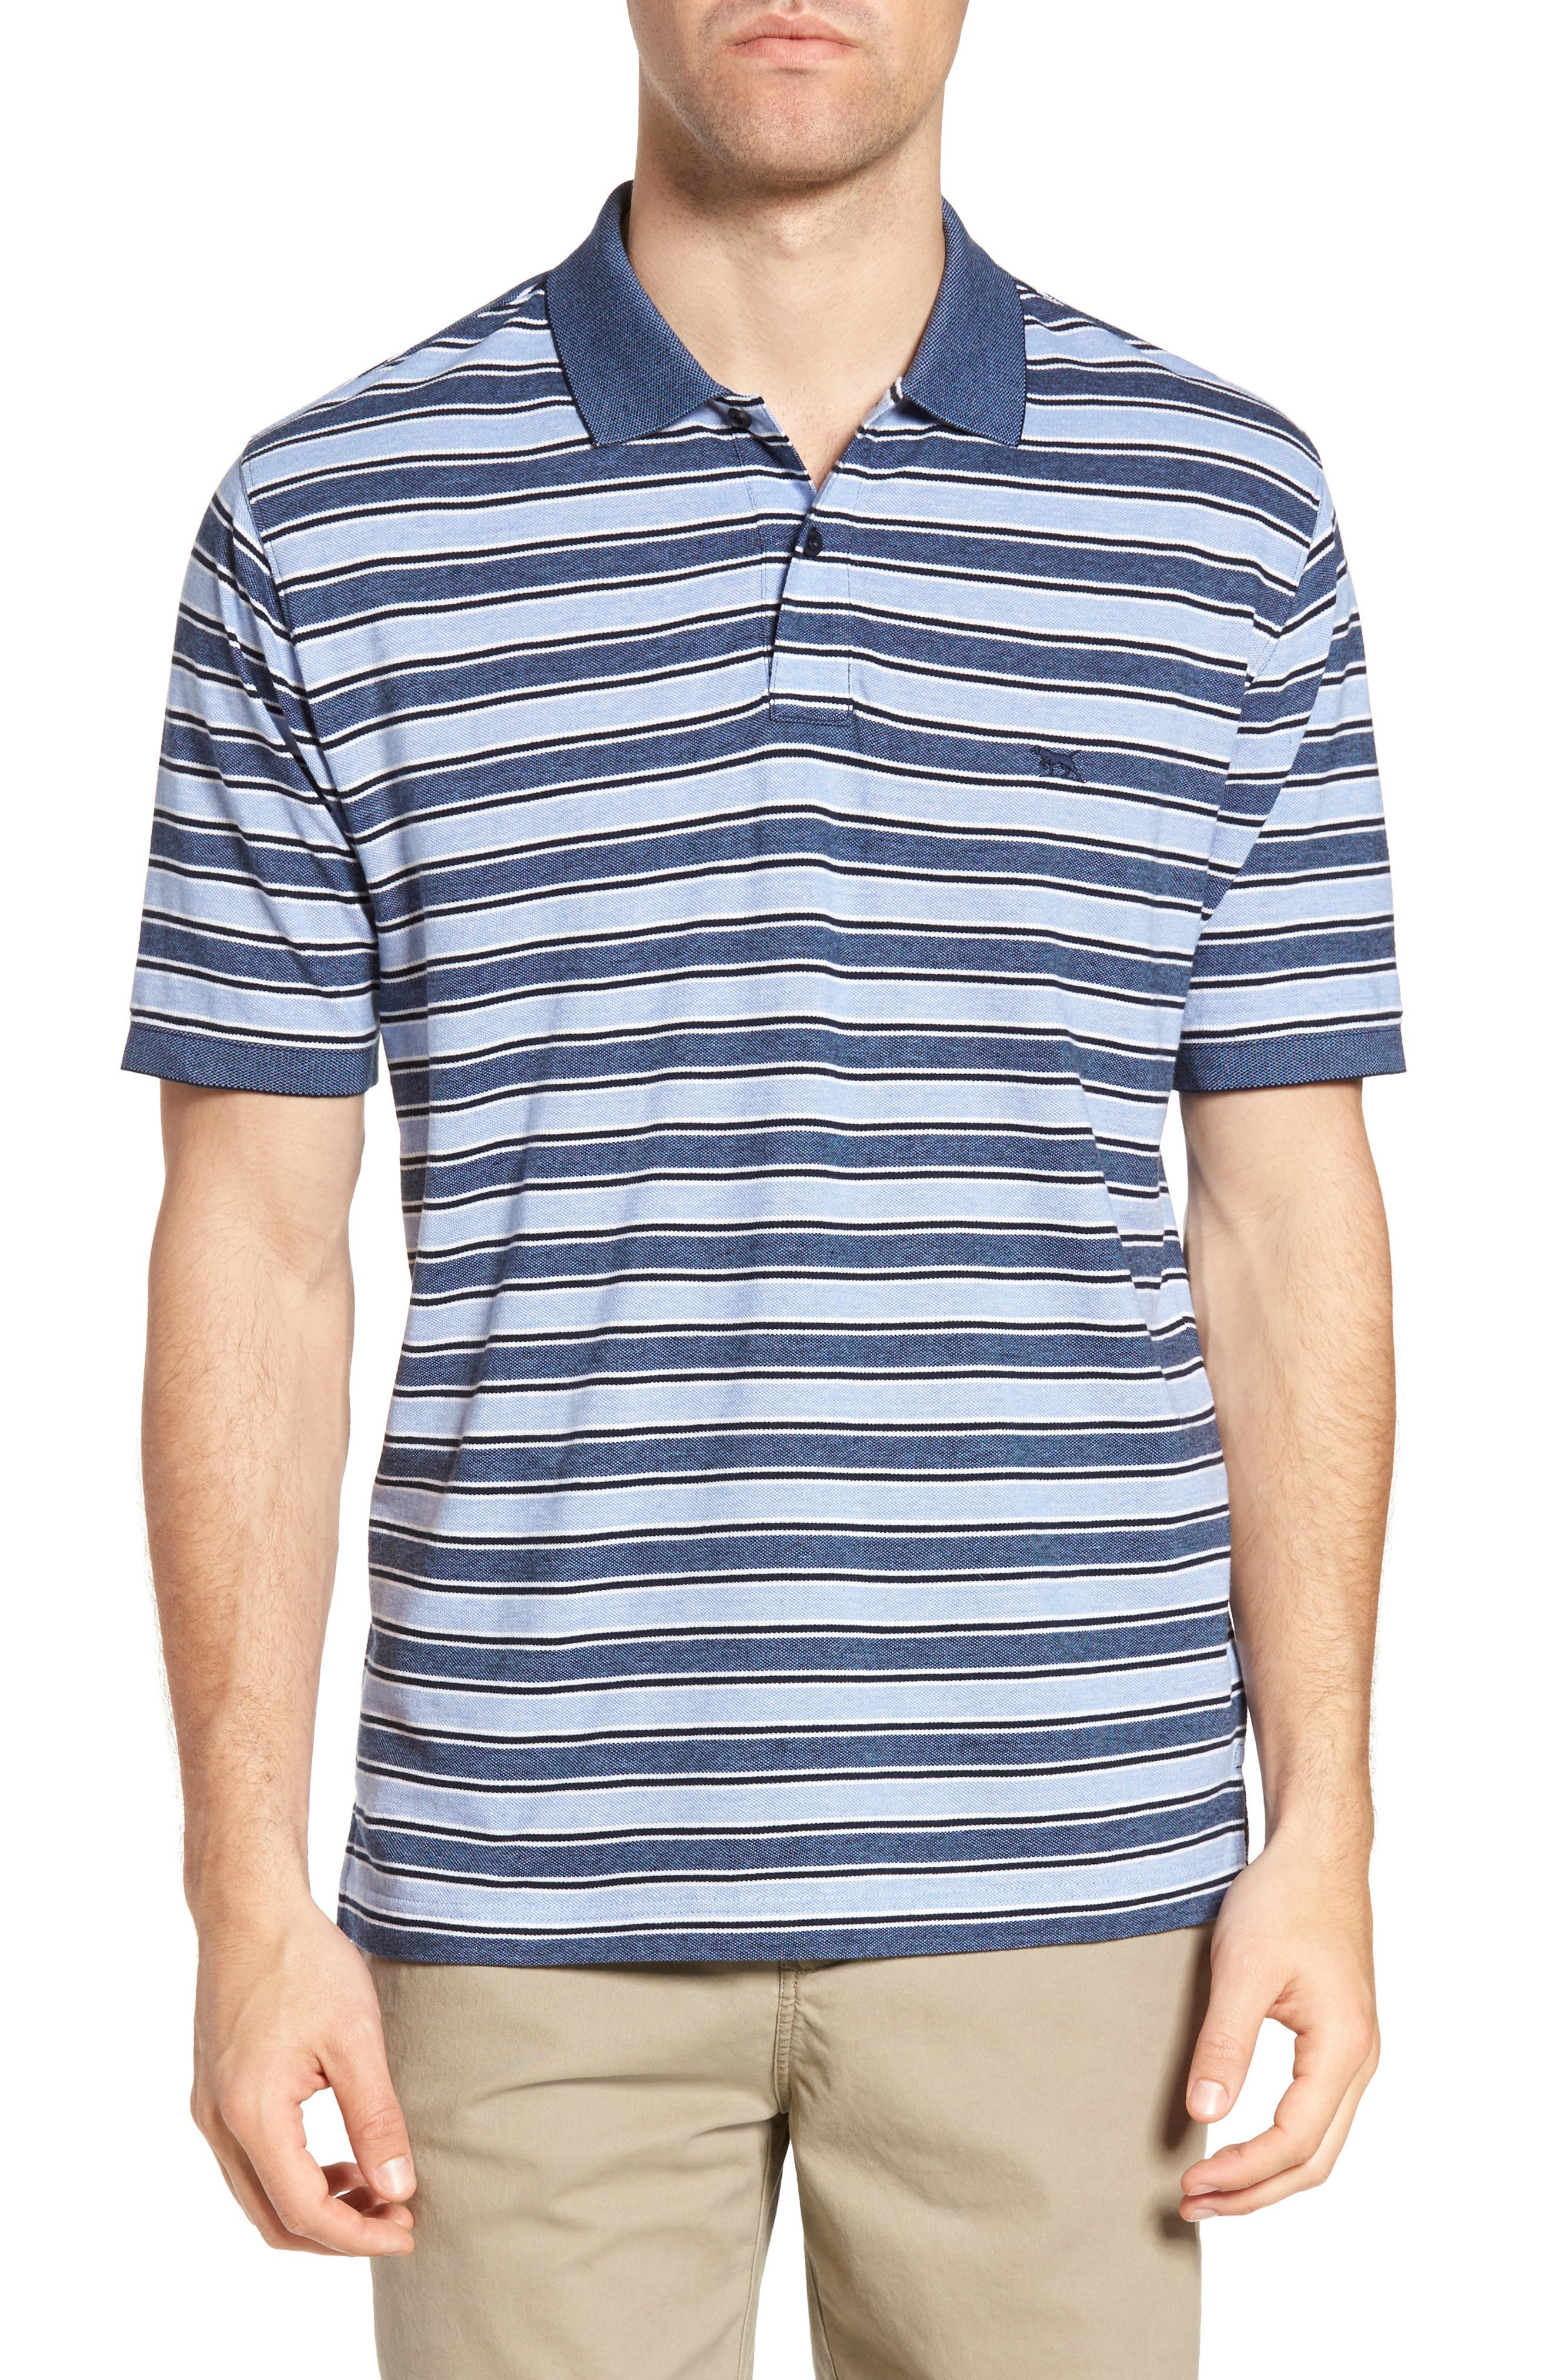 Alternate Image 1 Selected - Rodd & Gunn Sandy Point Stripe Piqué Polo